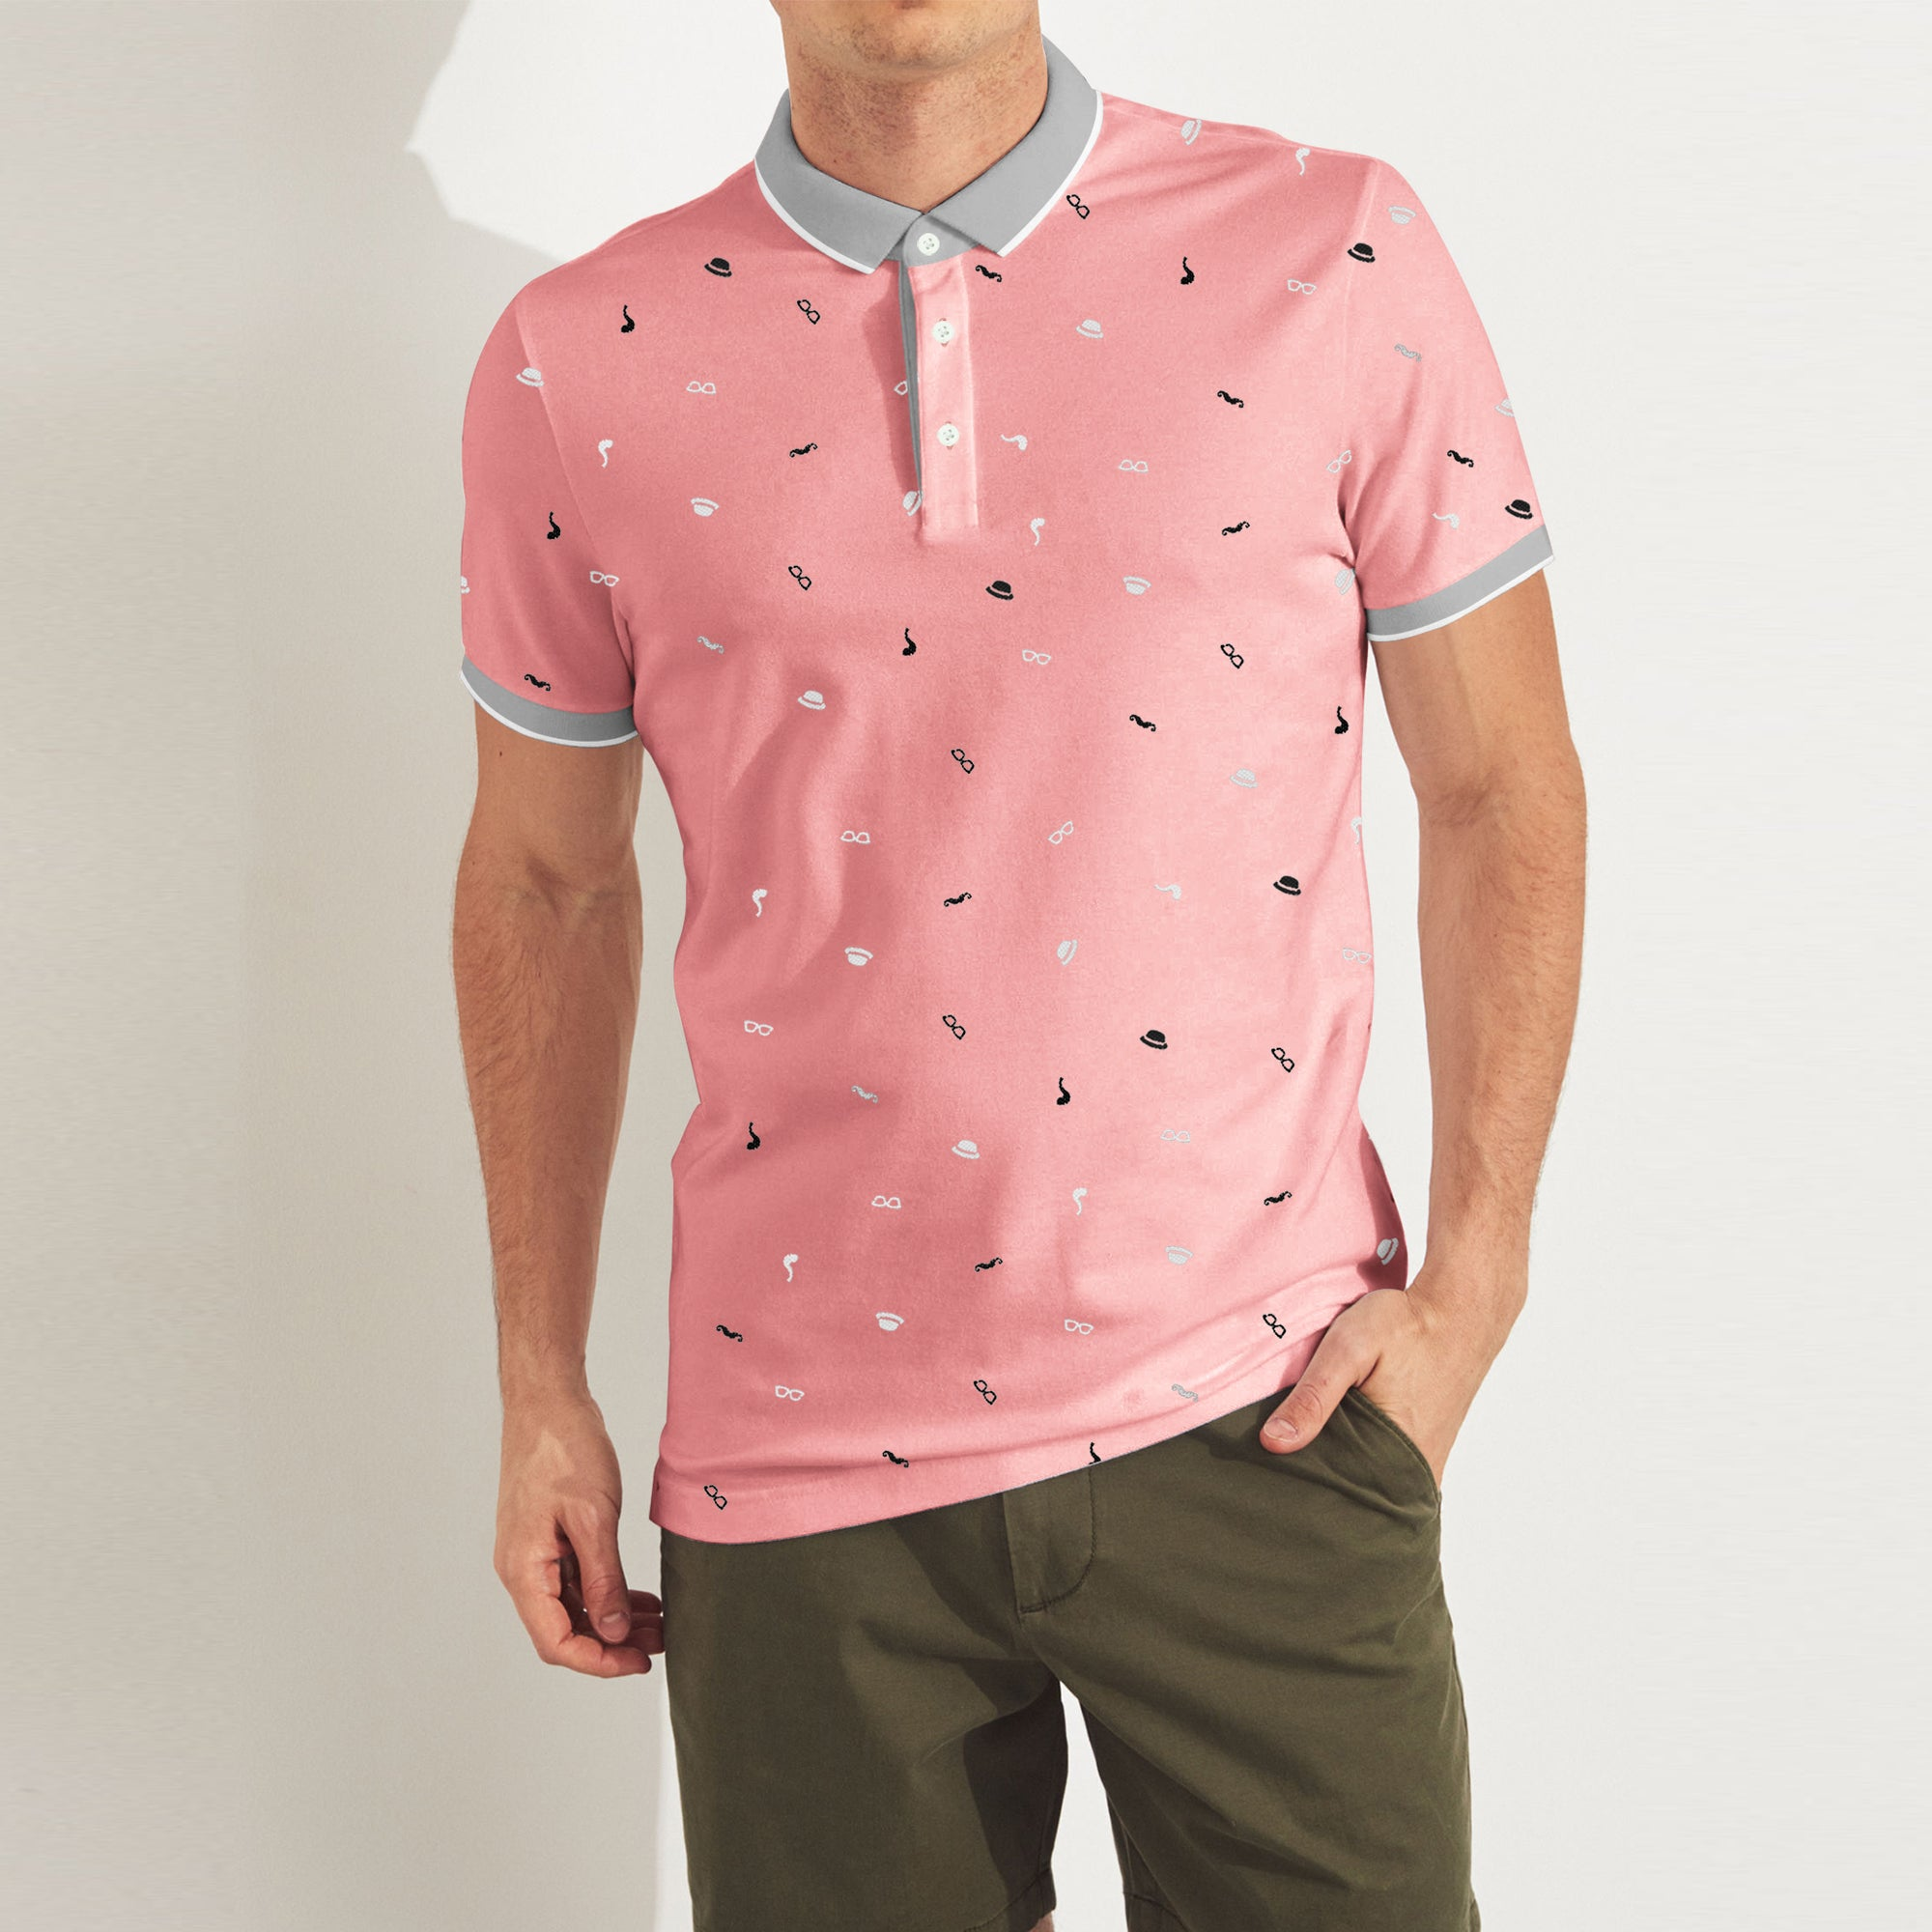 Bushirt Patloon P.Q Polo Shirt For Men-Coral Pink with Allover Print-BE8841